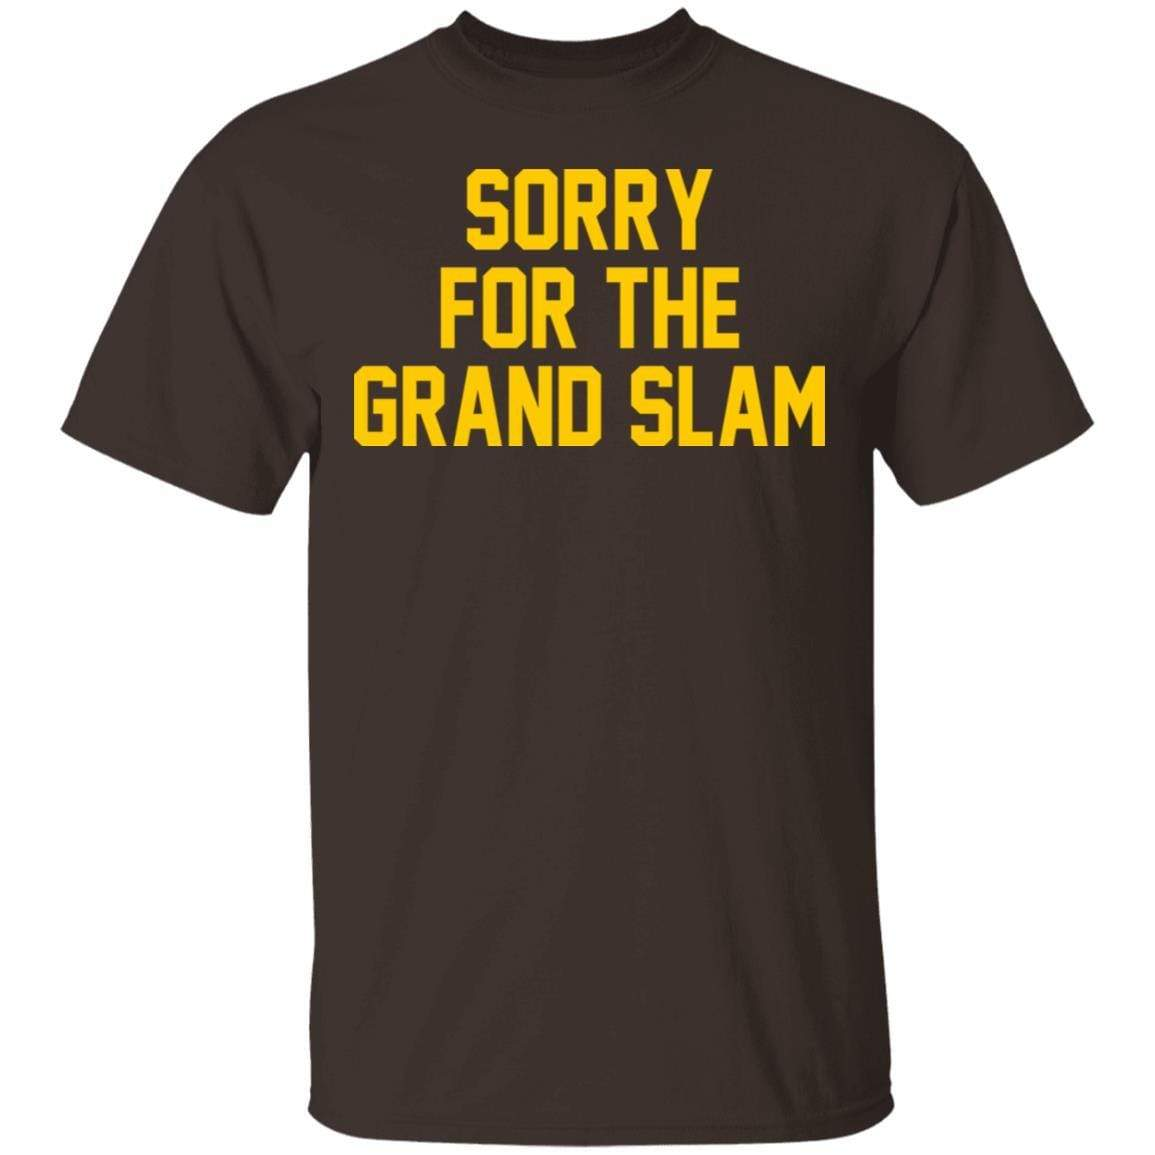 Sorry For The Grand Slam T-Shirts, Hoodies 1049-9956-88445020-48152 - Tee Ript